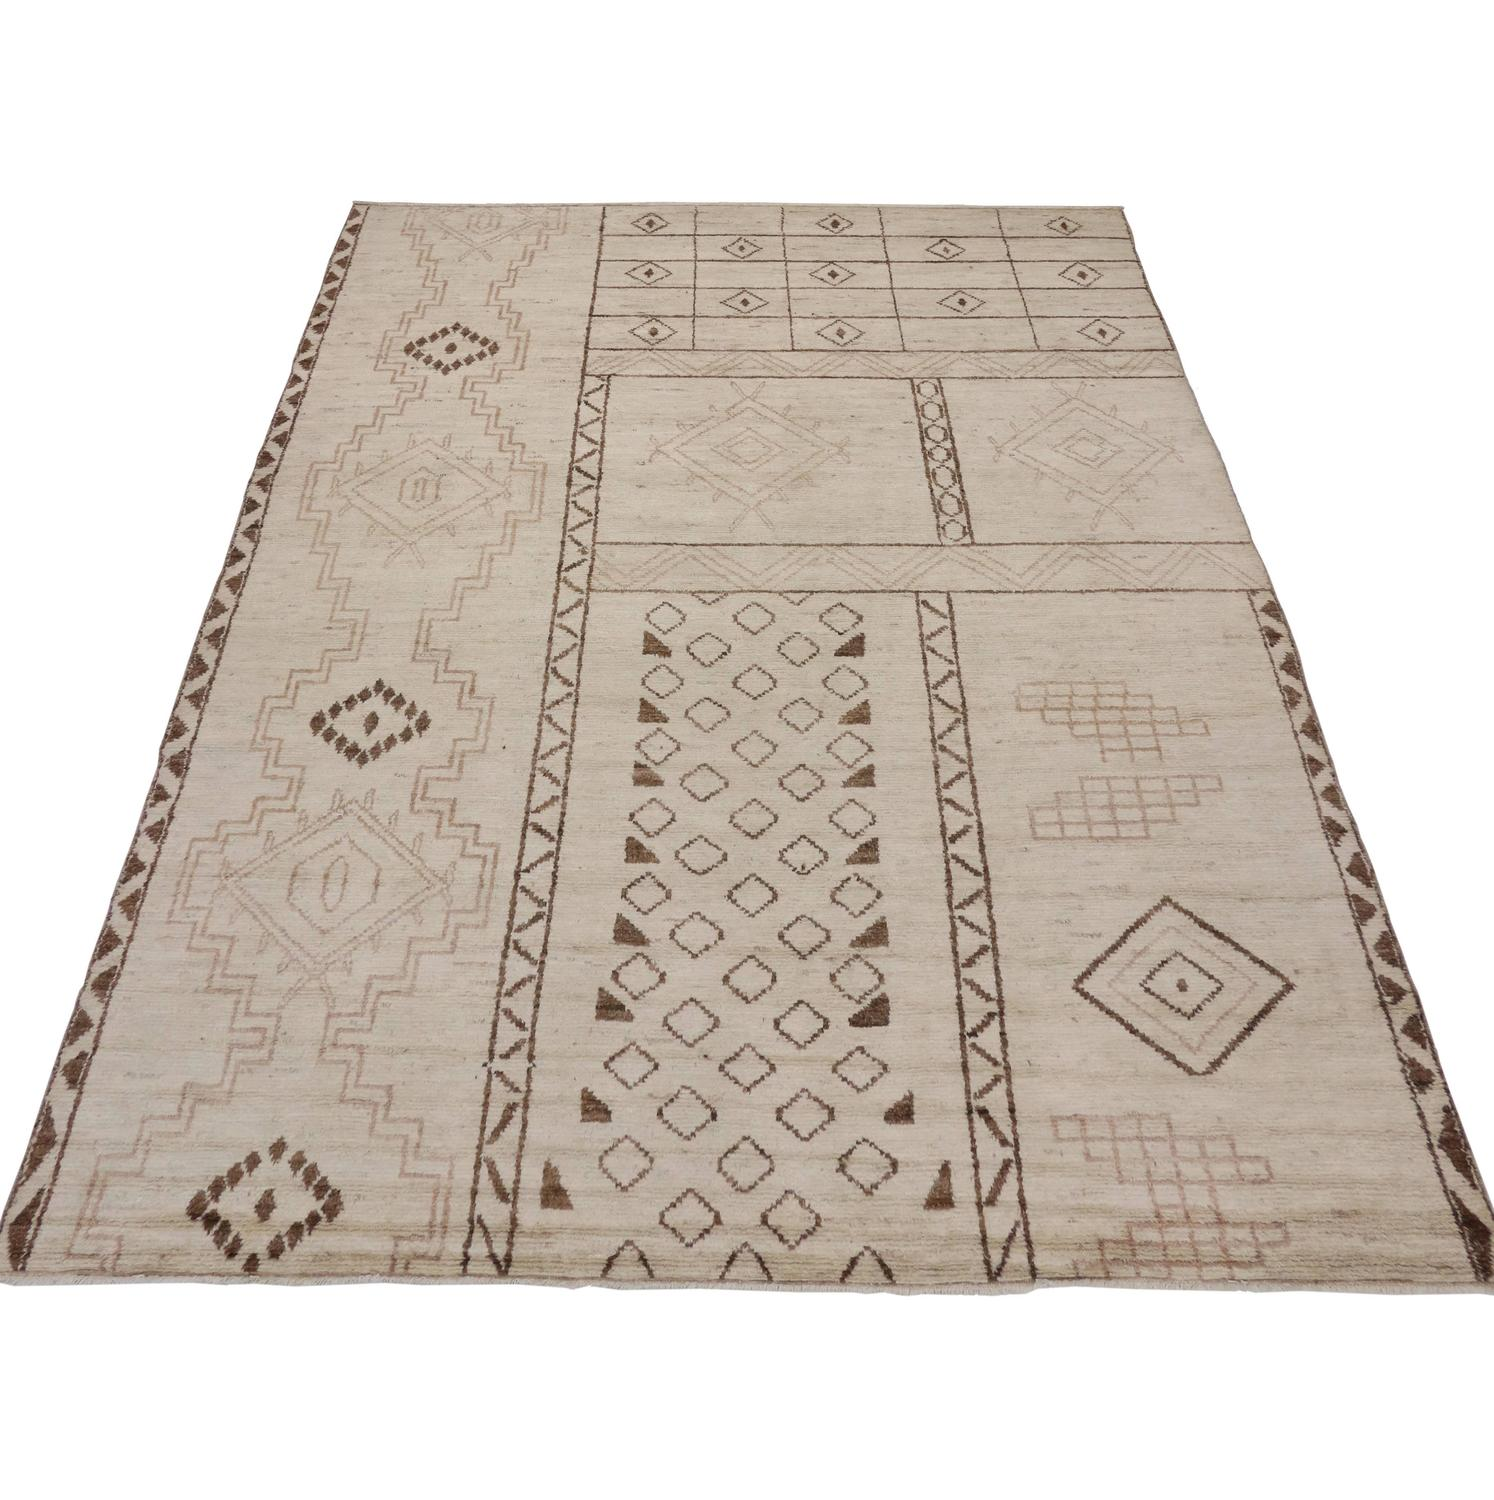 Contemporary Moroccan Area Rug with Tribal Design For Sale at 1stdibs